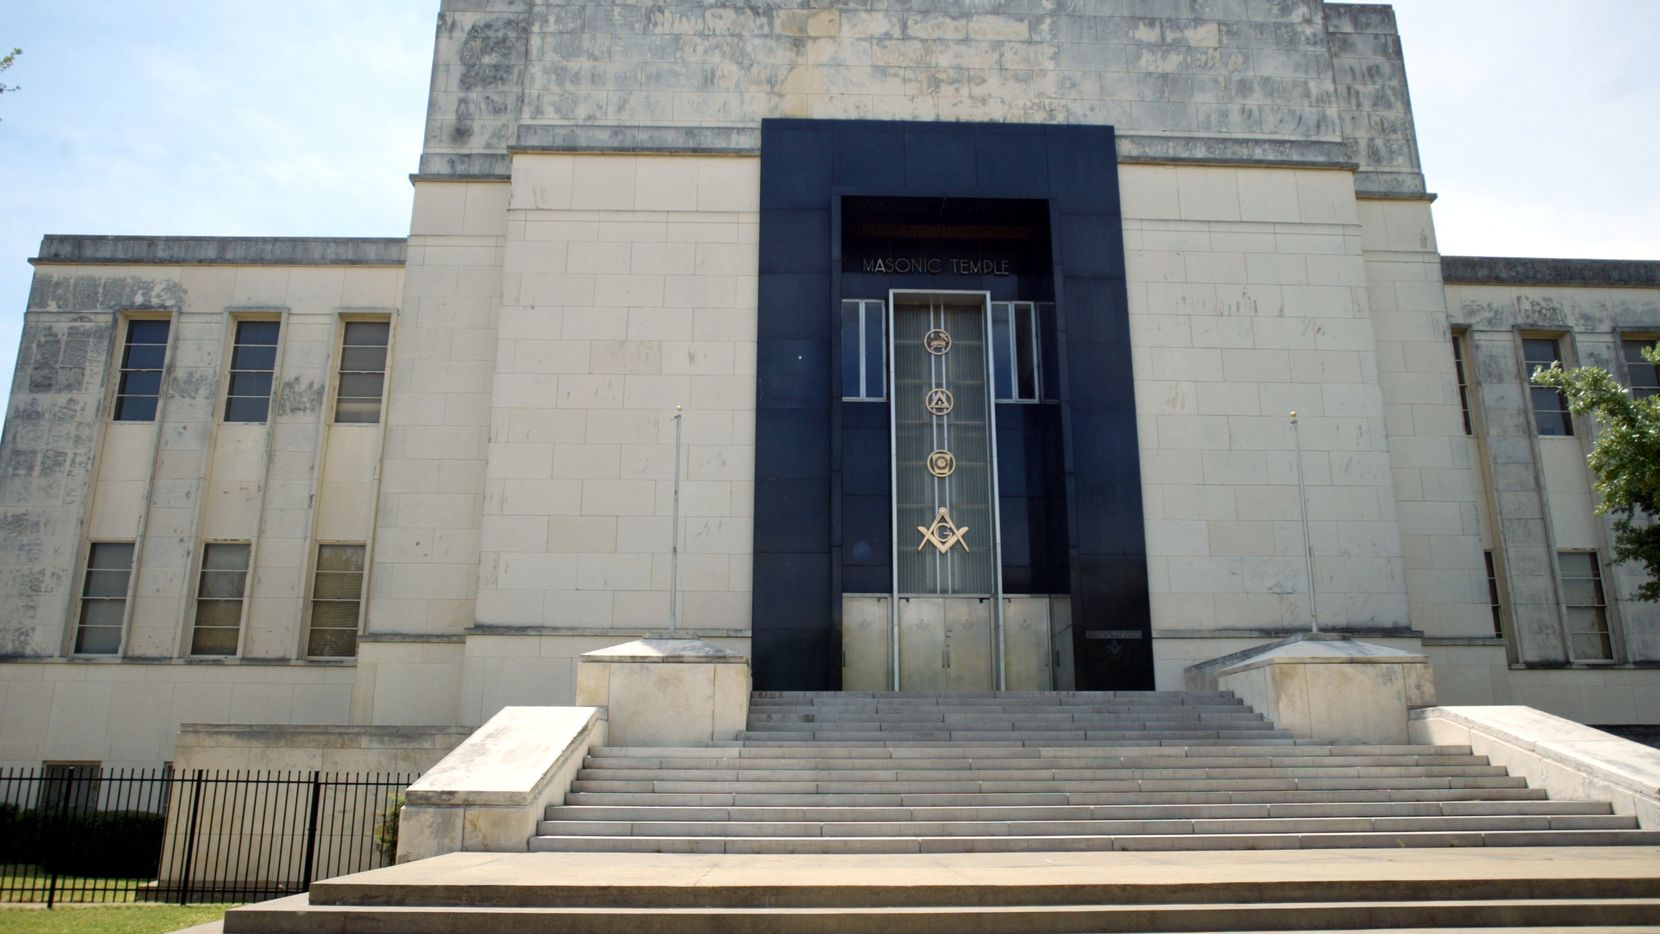 The Masonic Temple in downtown Dallas was built in 1941 and is being reused for office space.